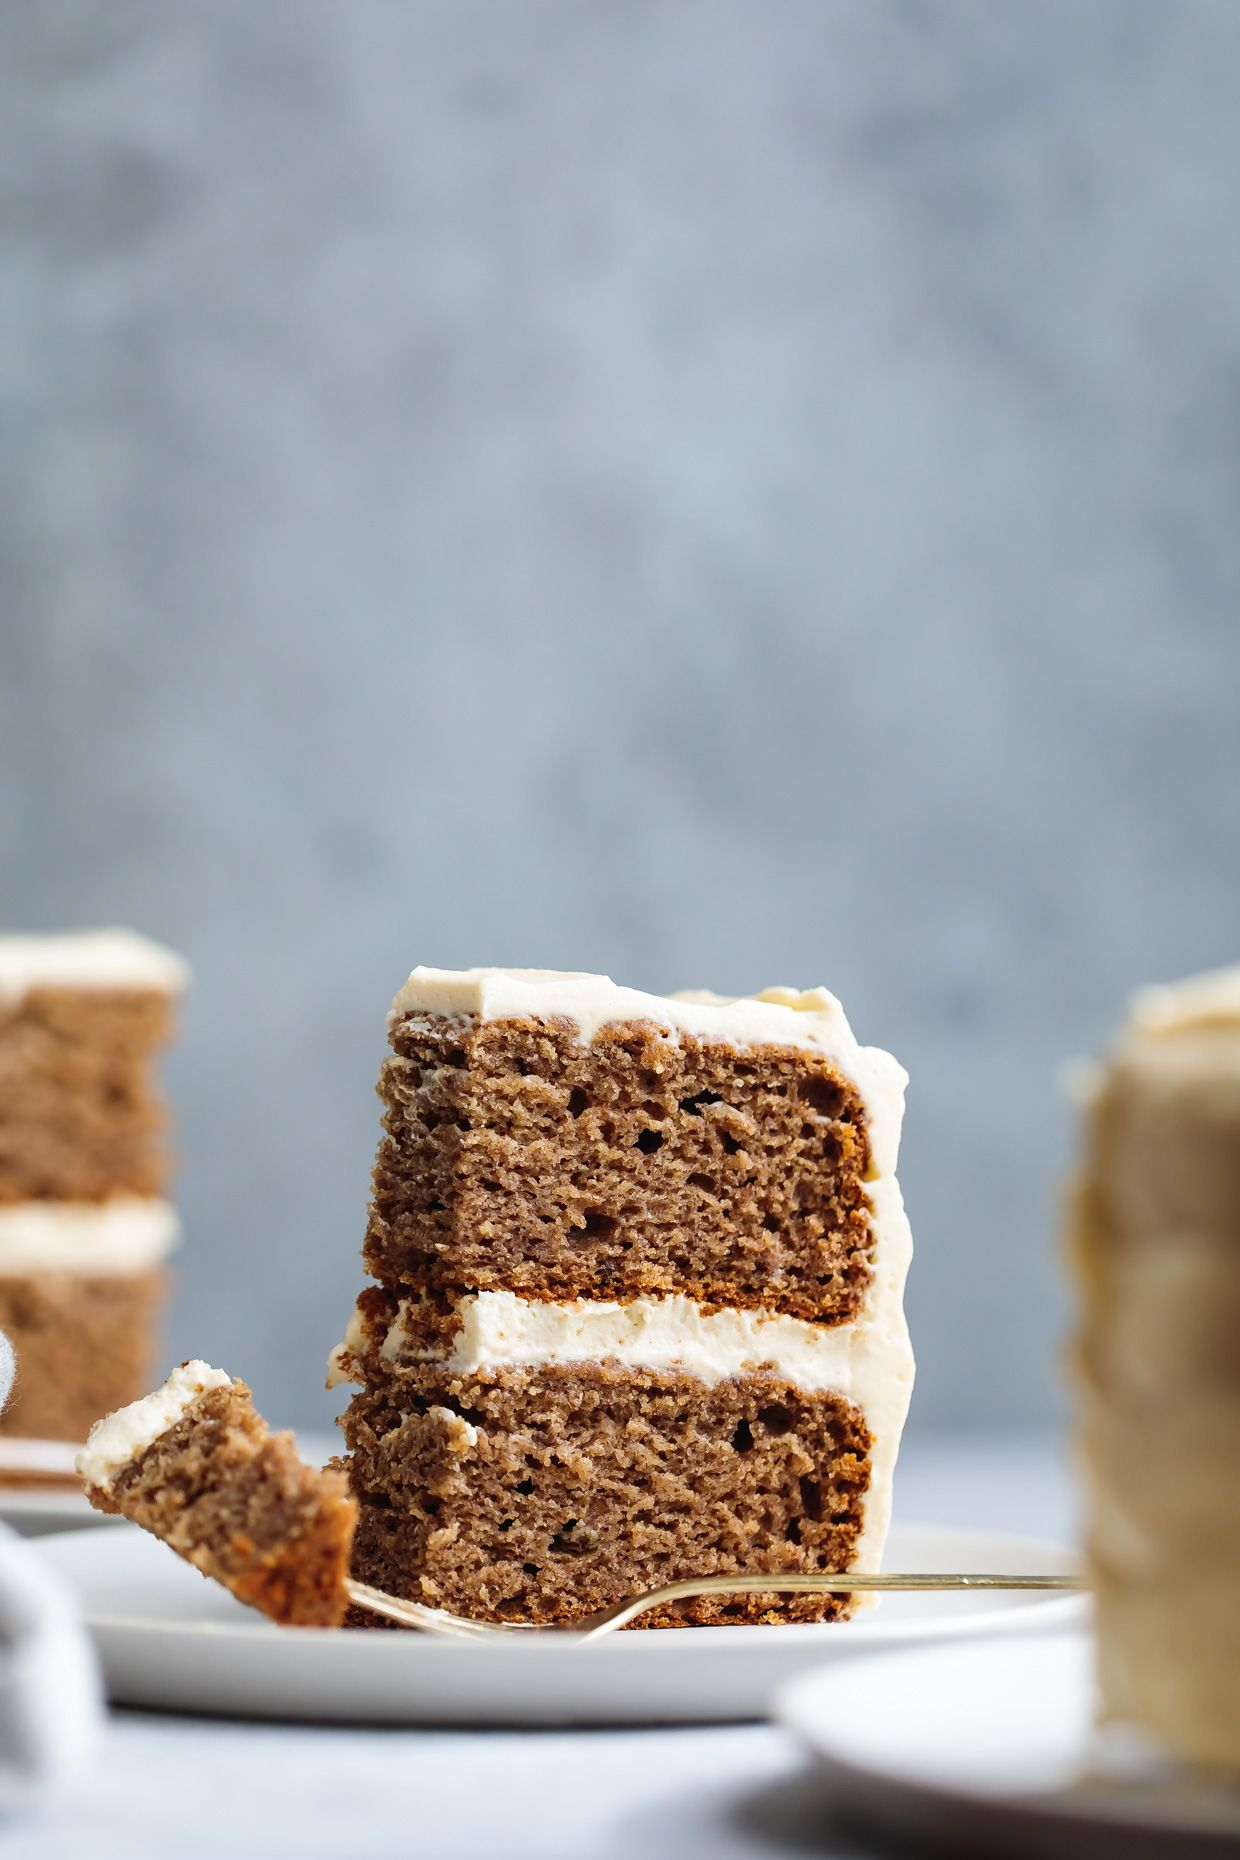 Baby Smash Cake: Banana Date Cake with Maple Cream Cheese Frosting.